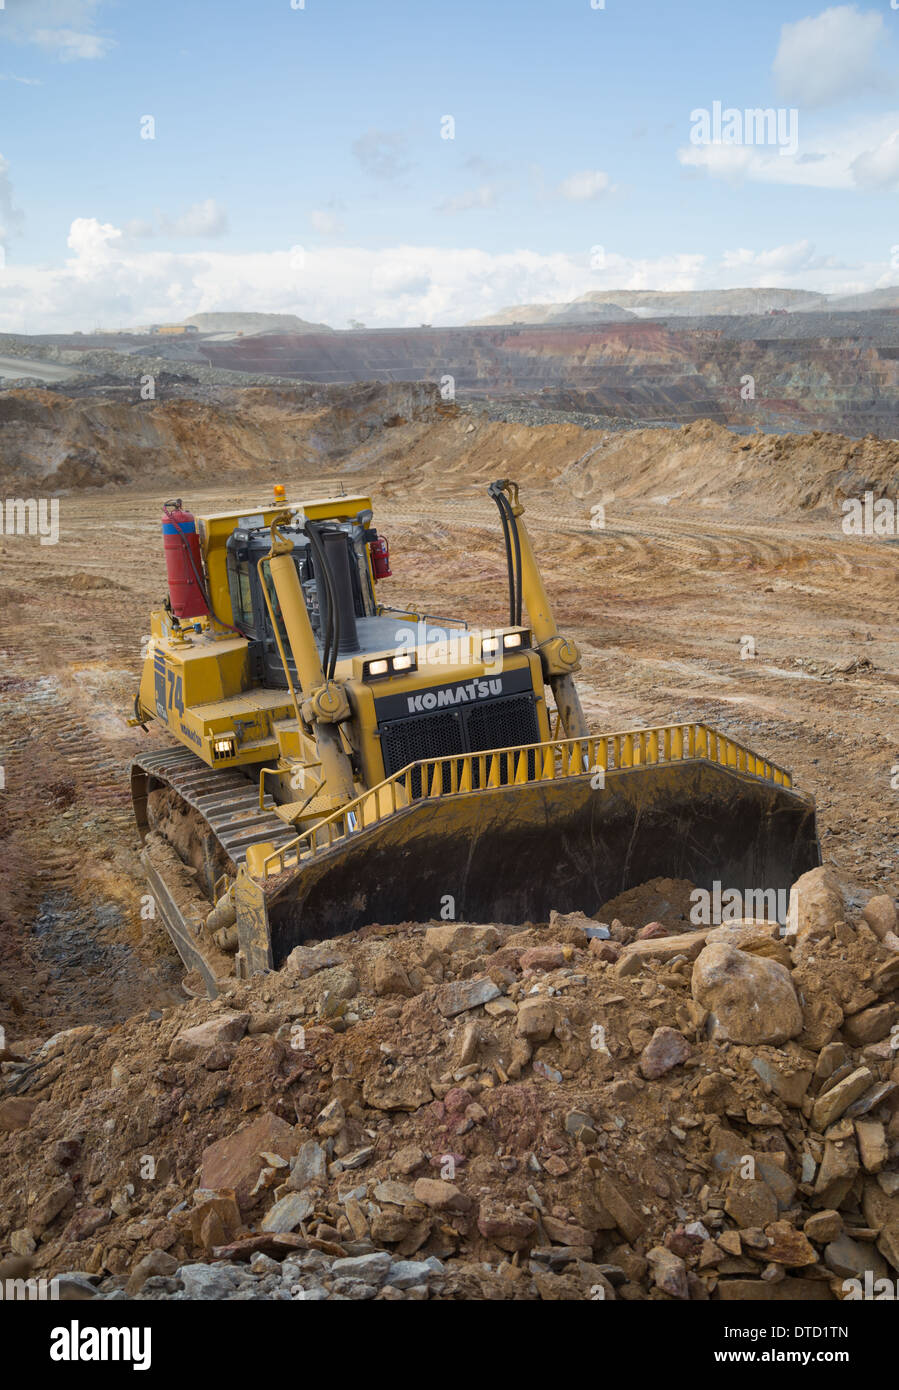 A massive yellow komatsu bulldozer pushes waste rock and soil in a large open cast copper and golf mine in Zambia, Africa. - Stock Image